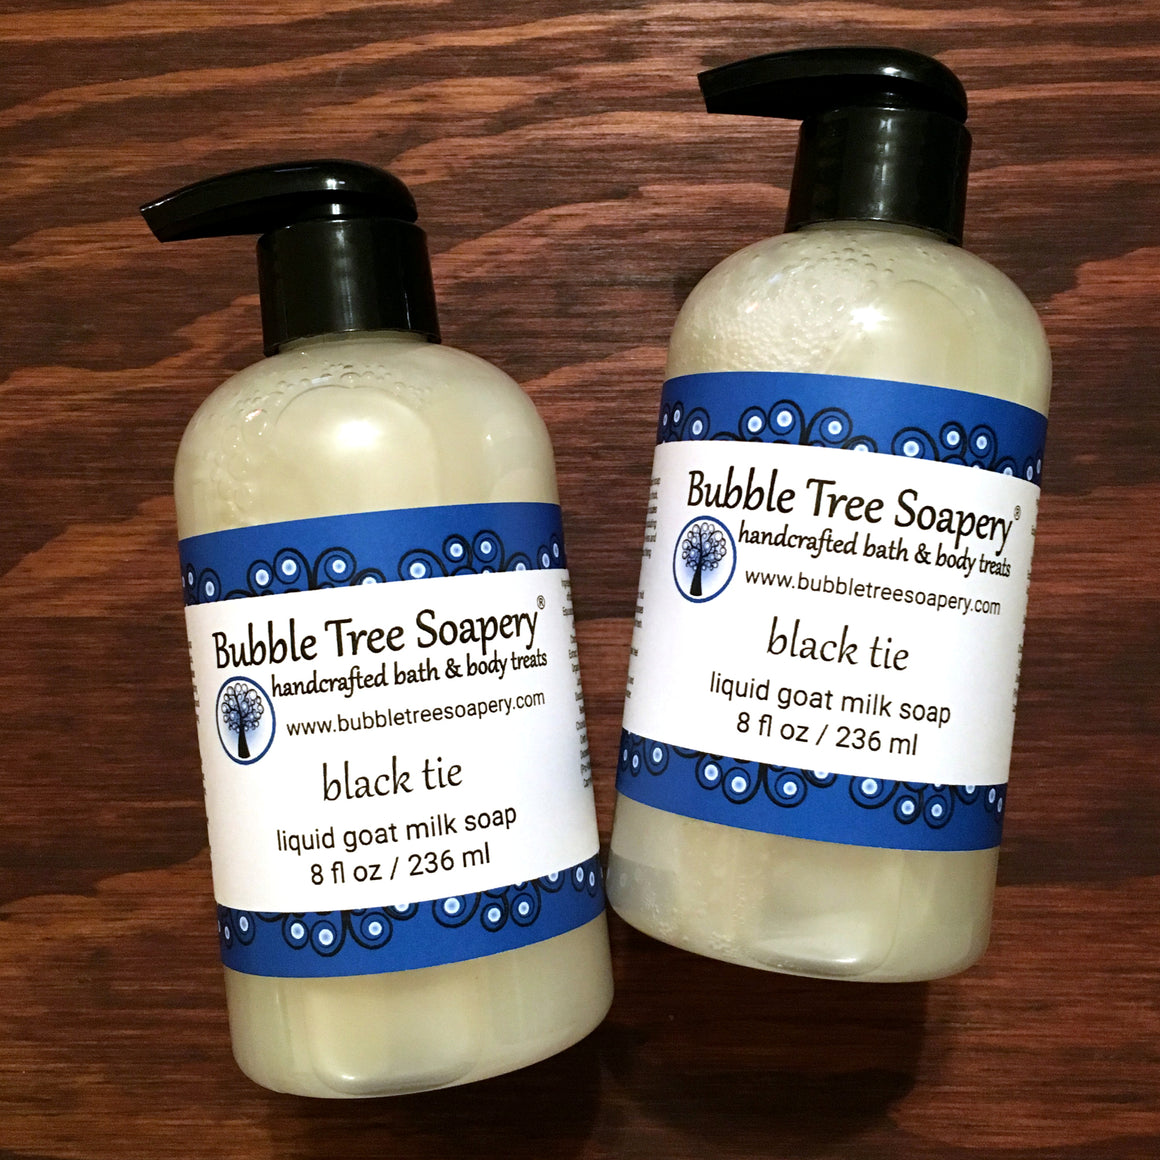 Black Tie Liquid Goat Milk Soap | Bubble Tree Soapery